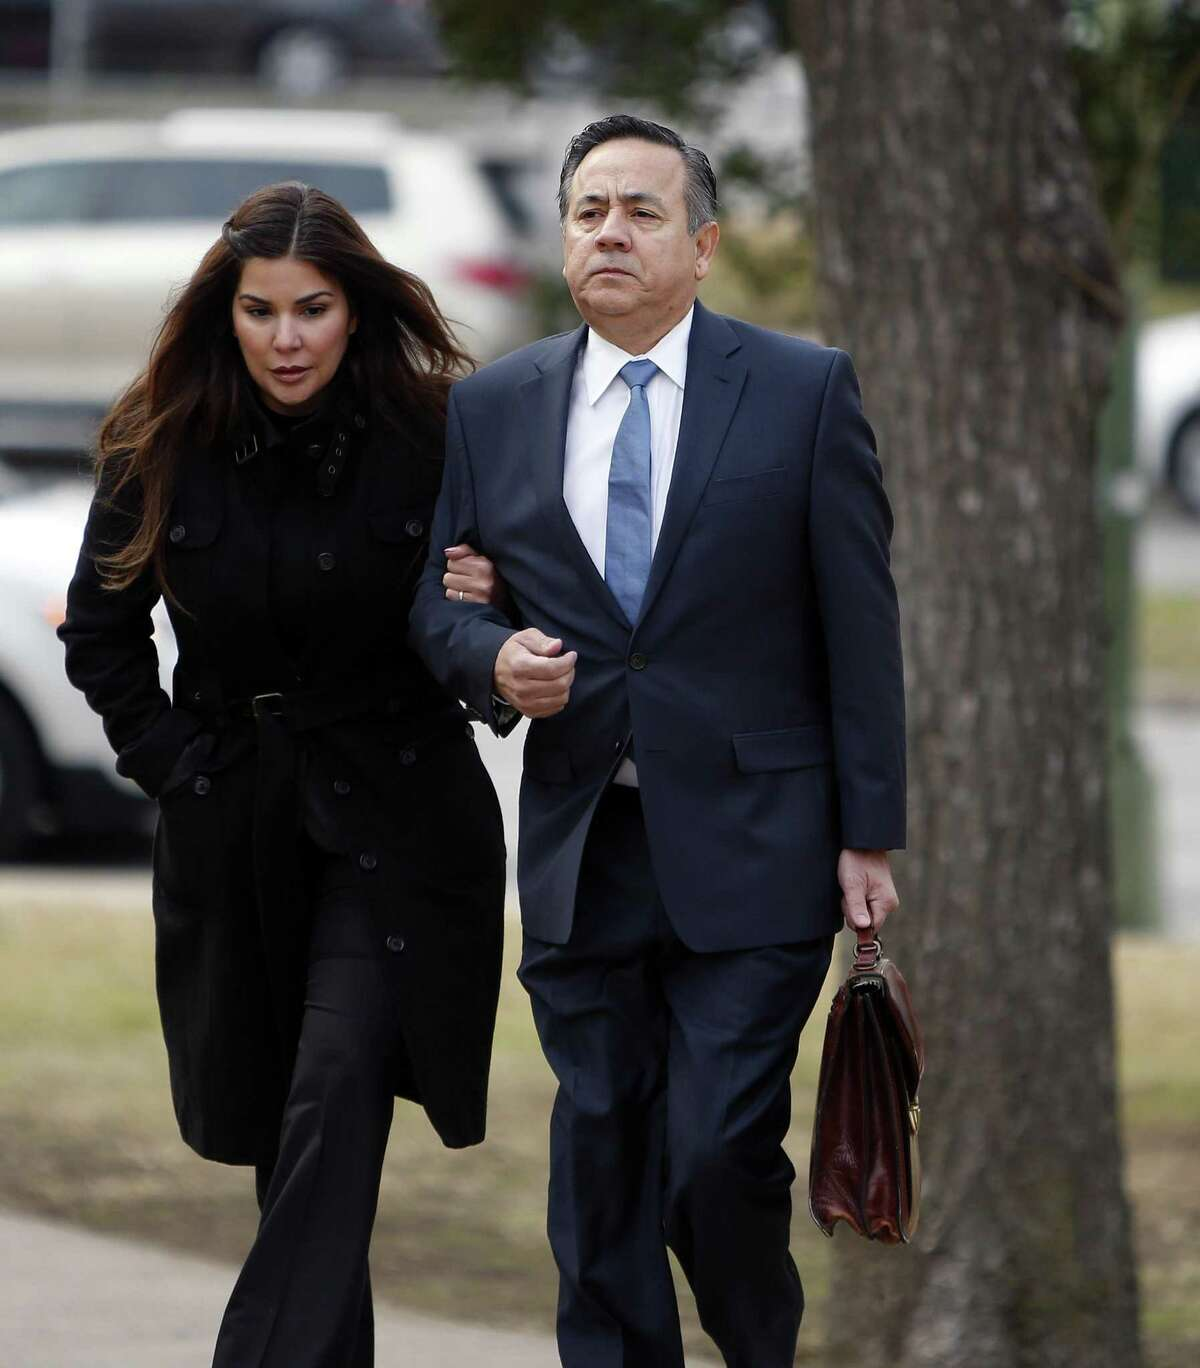 Sen. Carlos Uresti arrives with his wife Lleanna Urest at the John H. Wood Jr. Federal Courthouse.